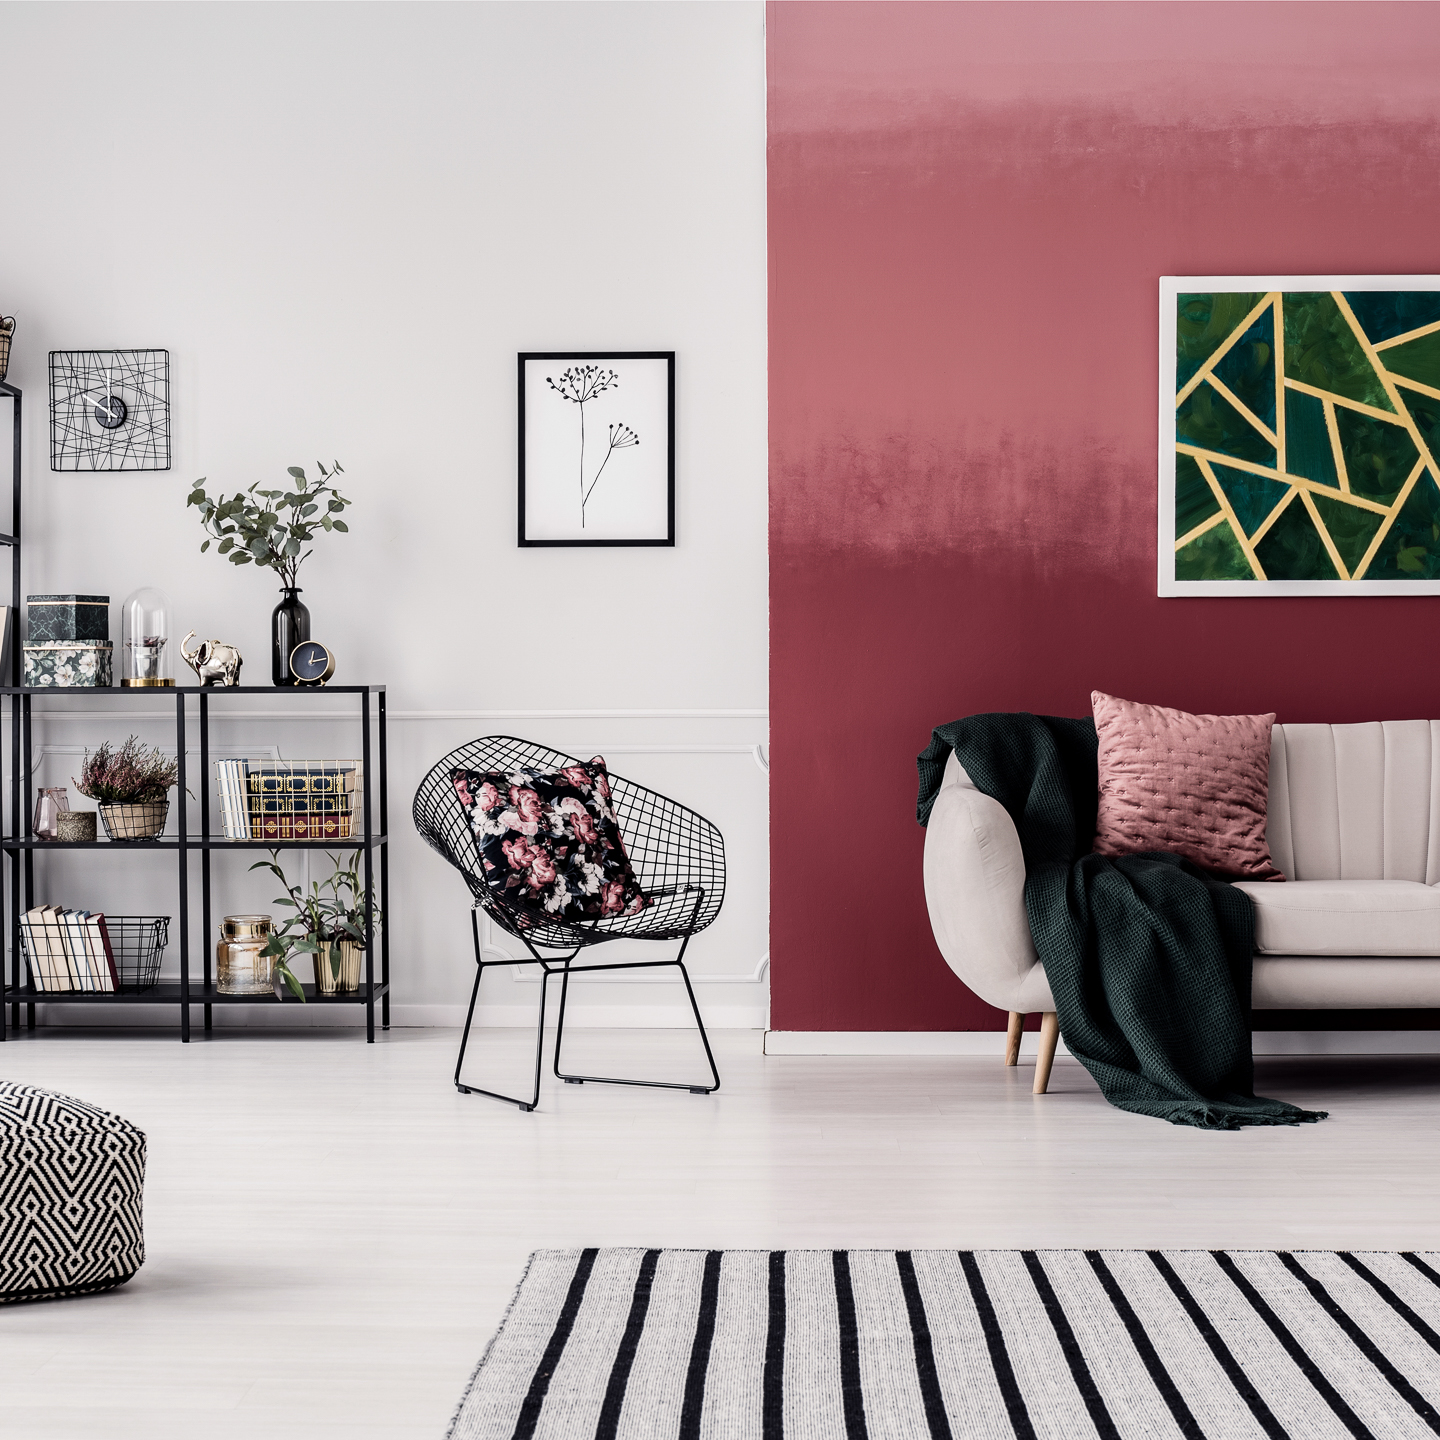 Wall Paint Design Ideas With Tape 10 Diy Painting Projects